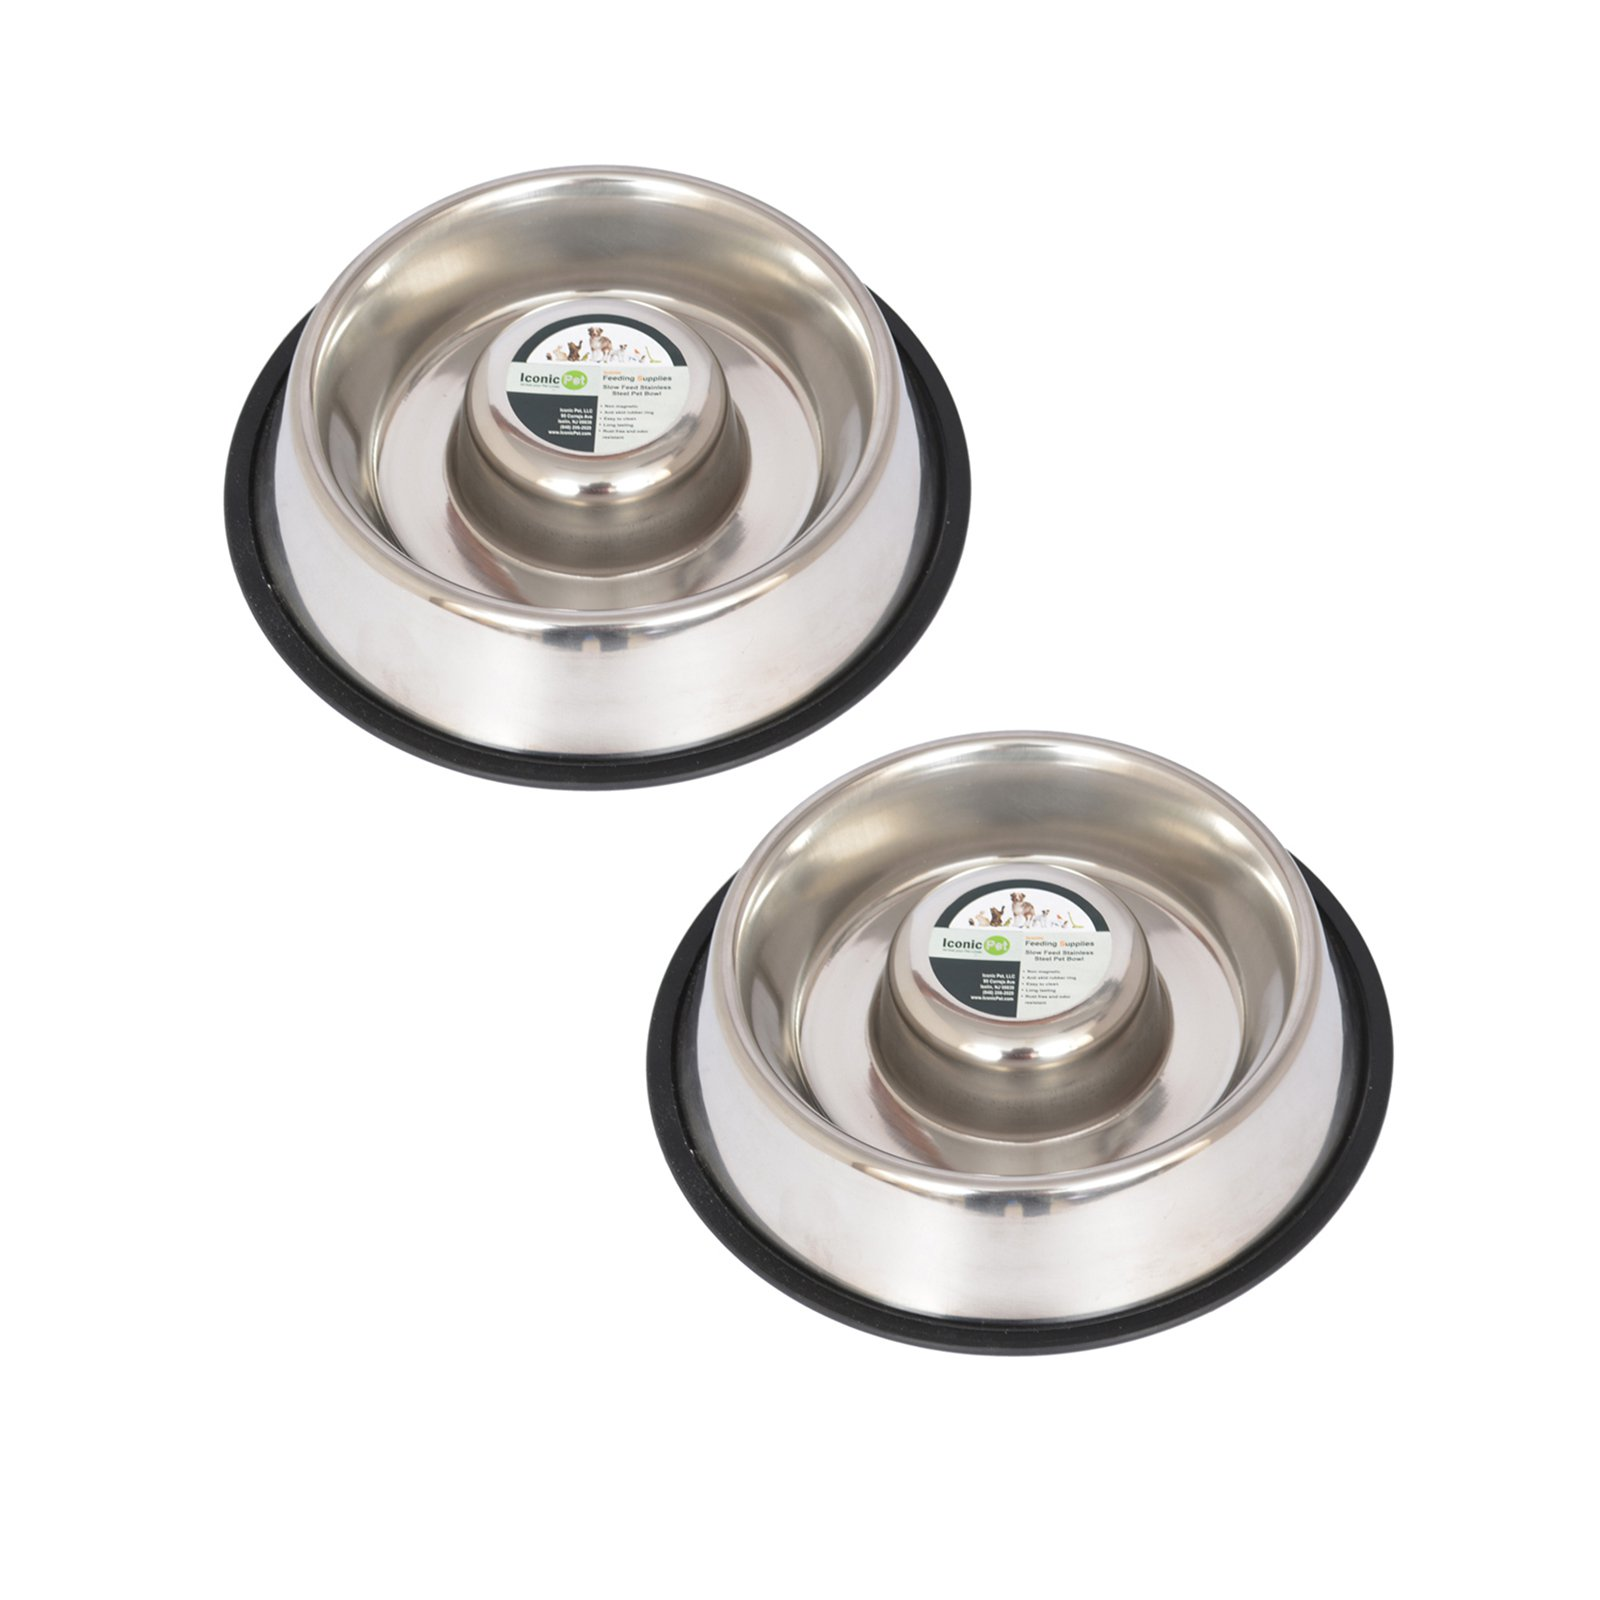 2-Pack Slow Feed Stainless Steel Pet Bowl For Dog or Cat, Large, 48 Oz